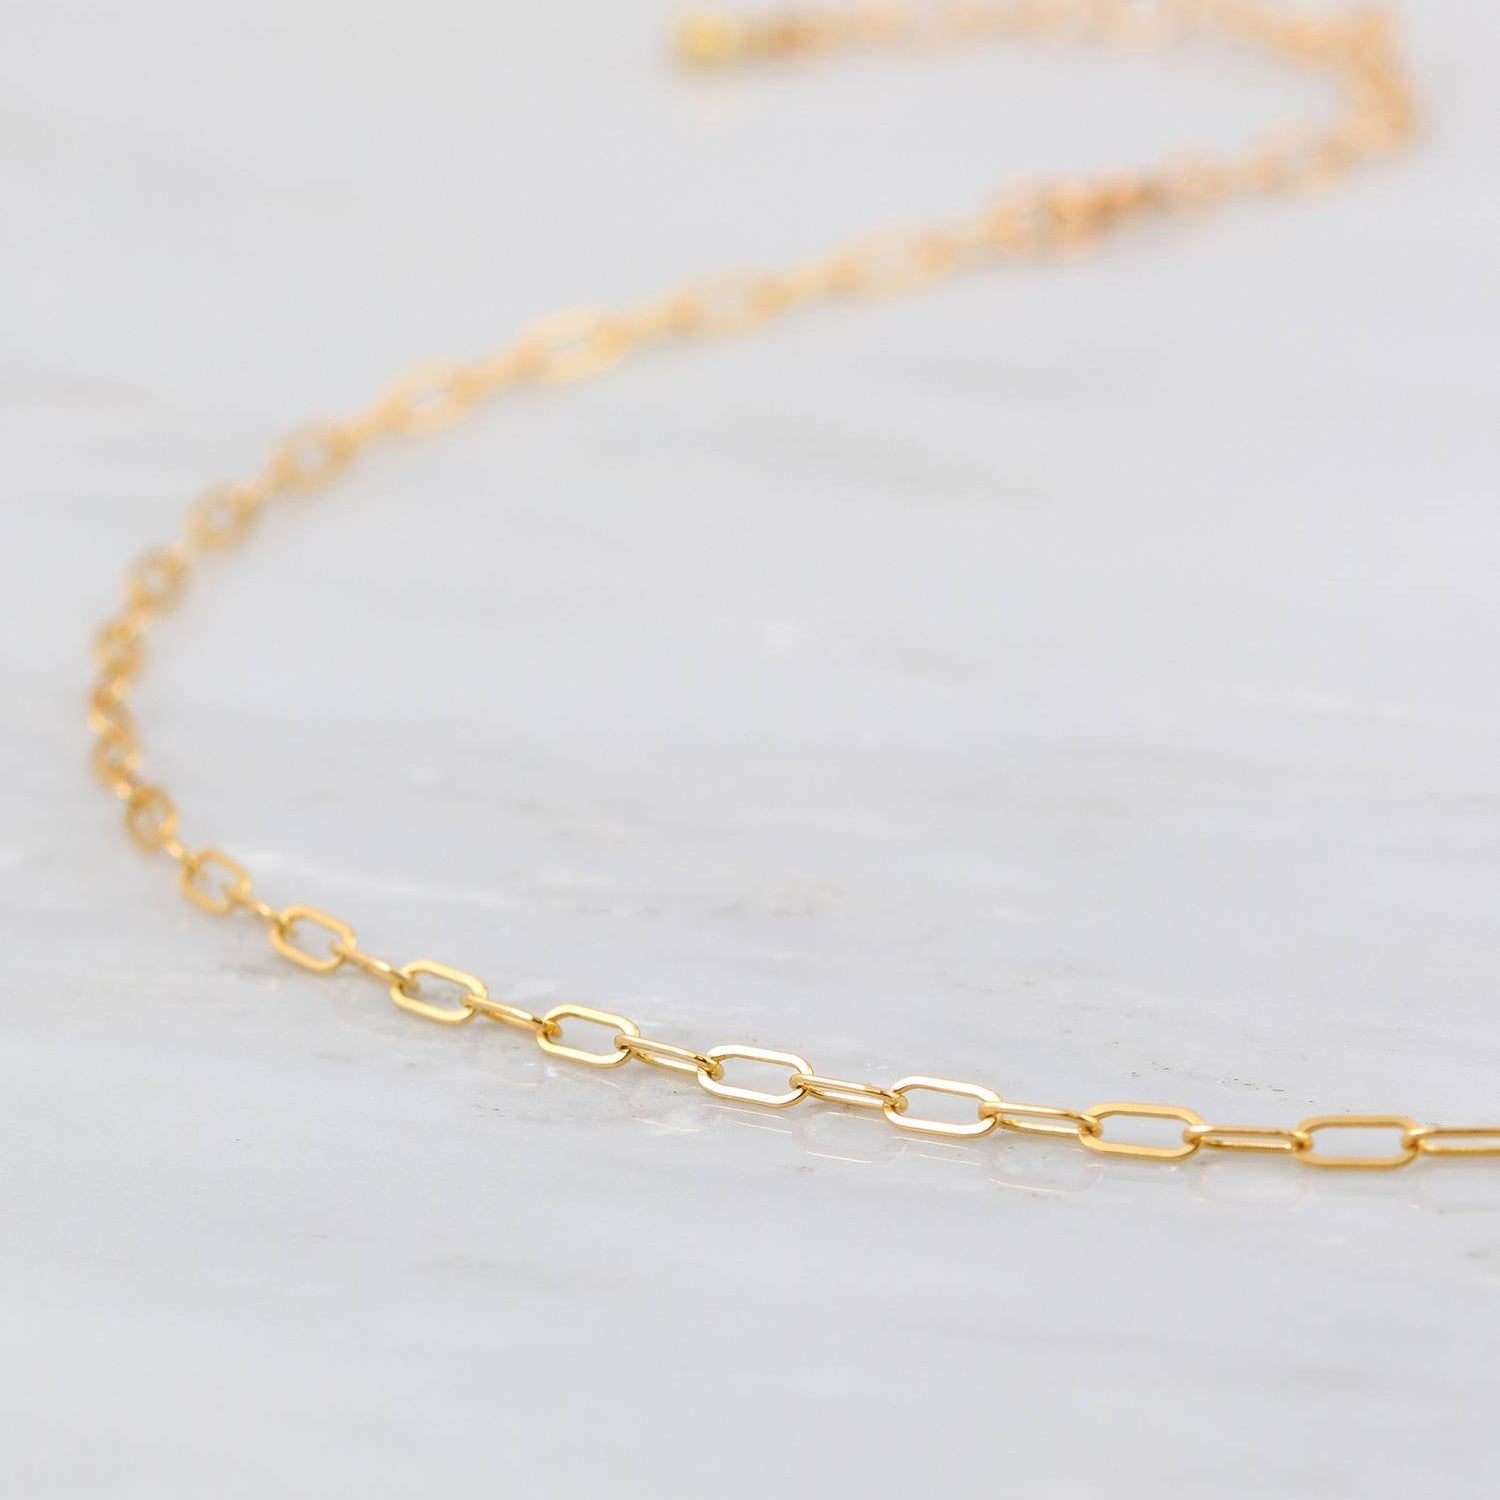 Paperclip Necklace, Delicate Gold Choker, Chain Choker Necklace, Chain Choker Necklace, Minimalist Choker, Gold Filled Choker Chain